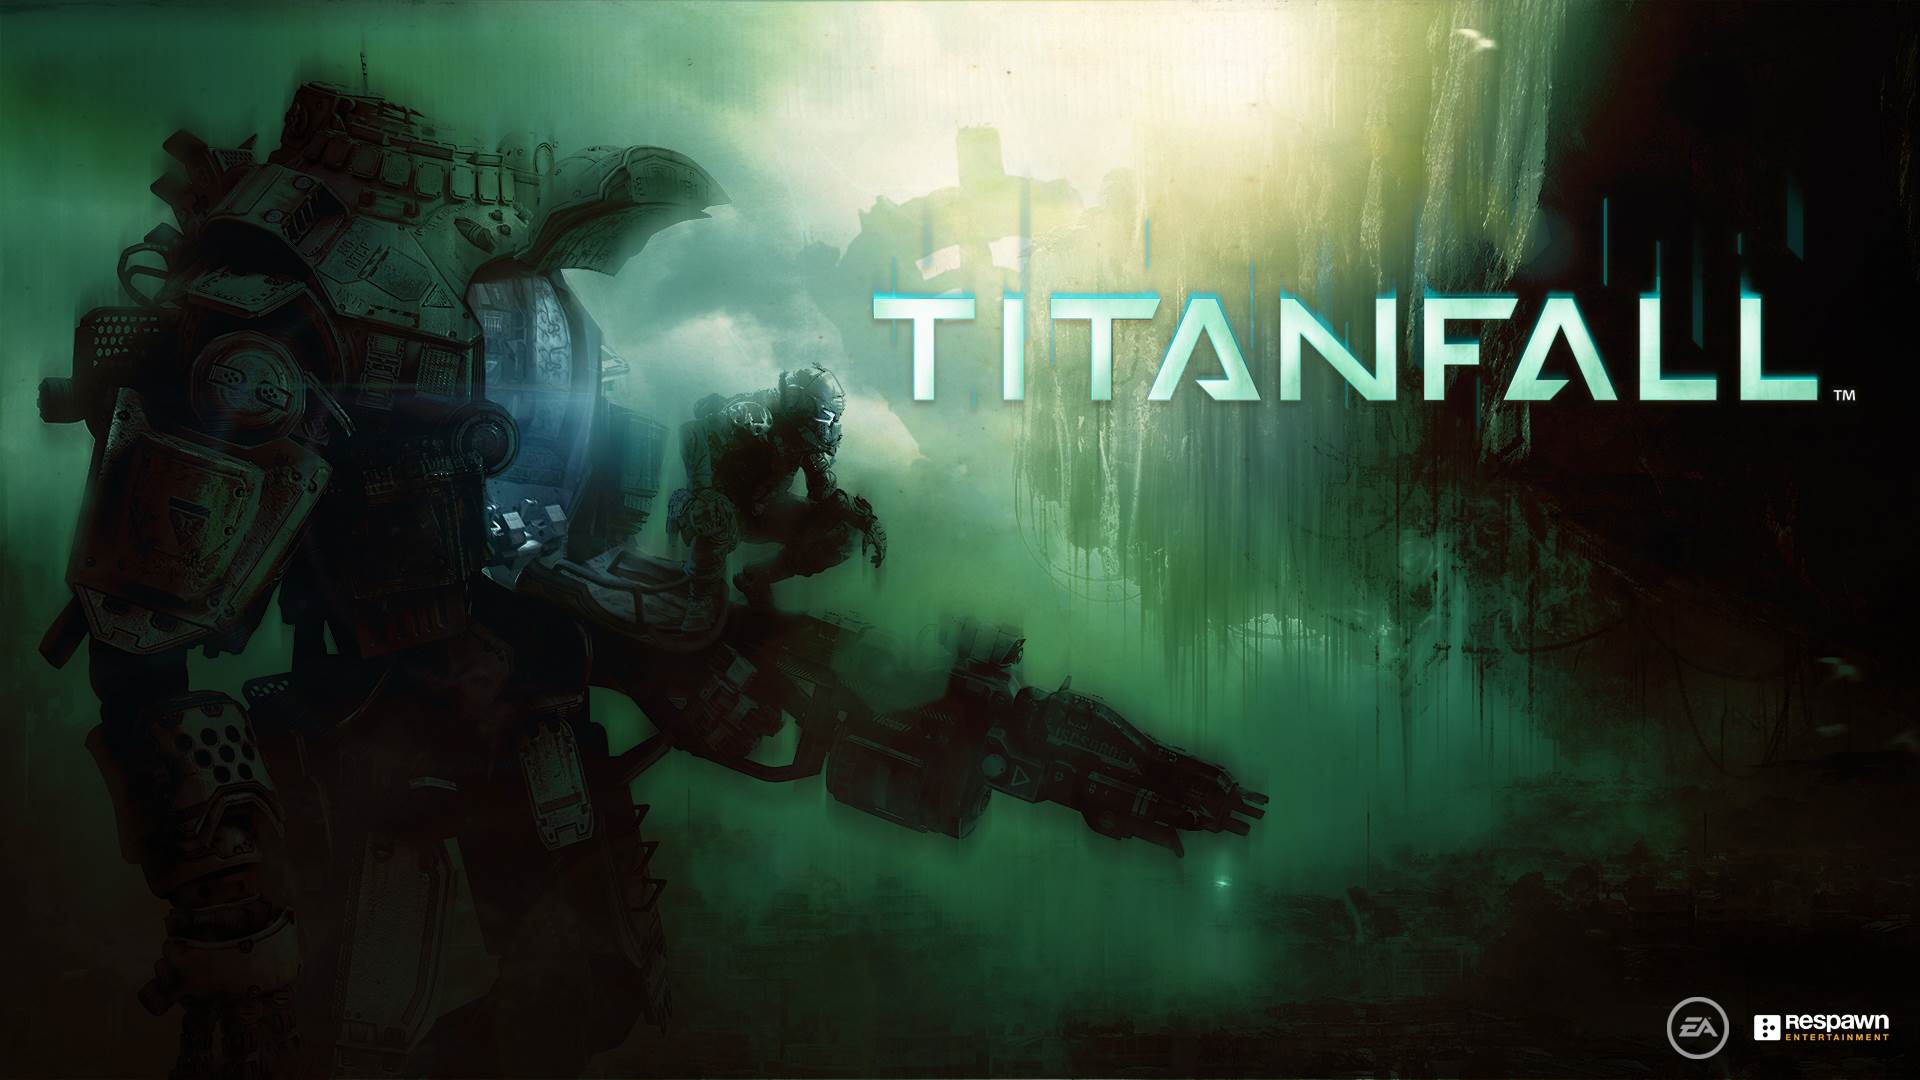 Check out Titanfall Wallpapers below: 866